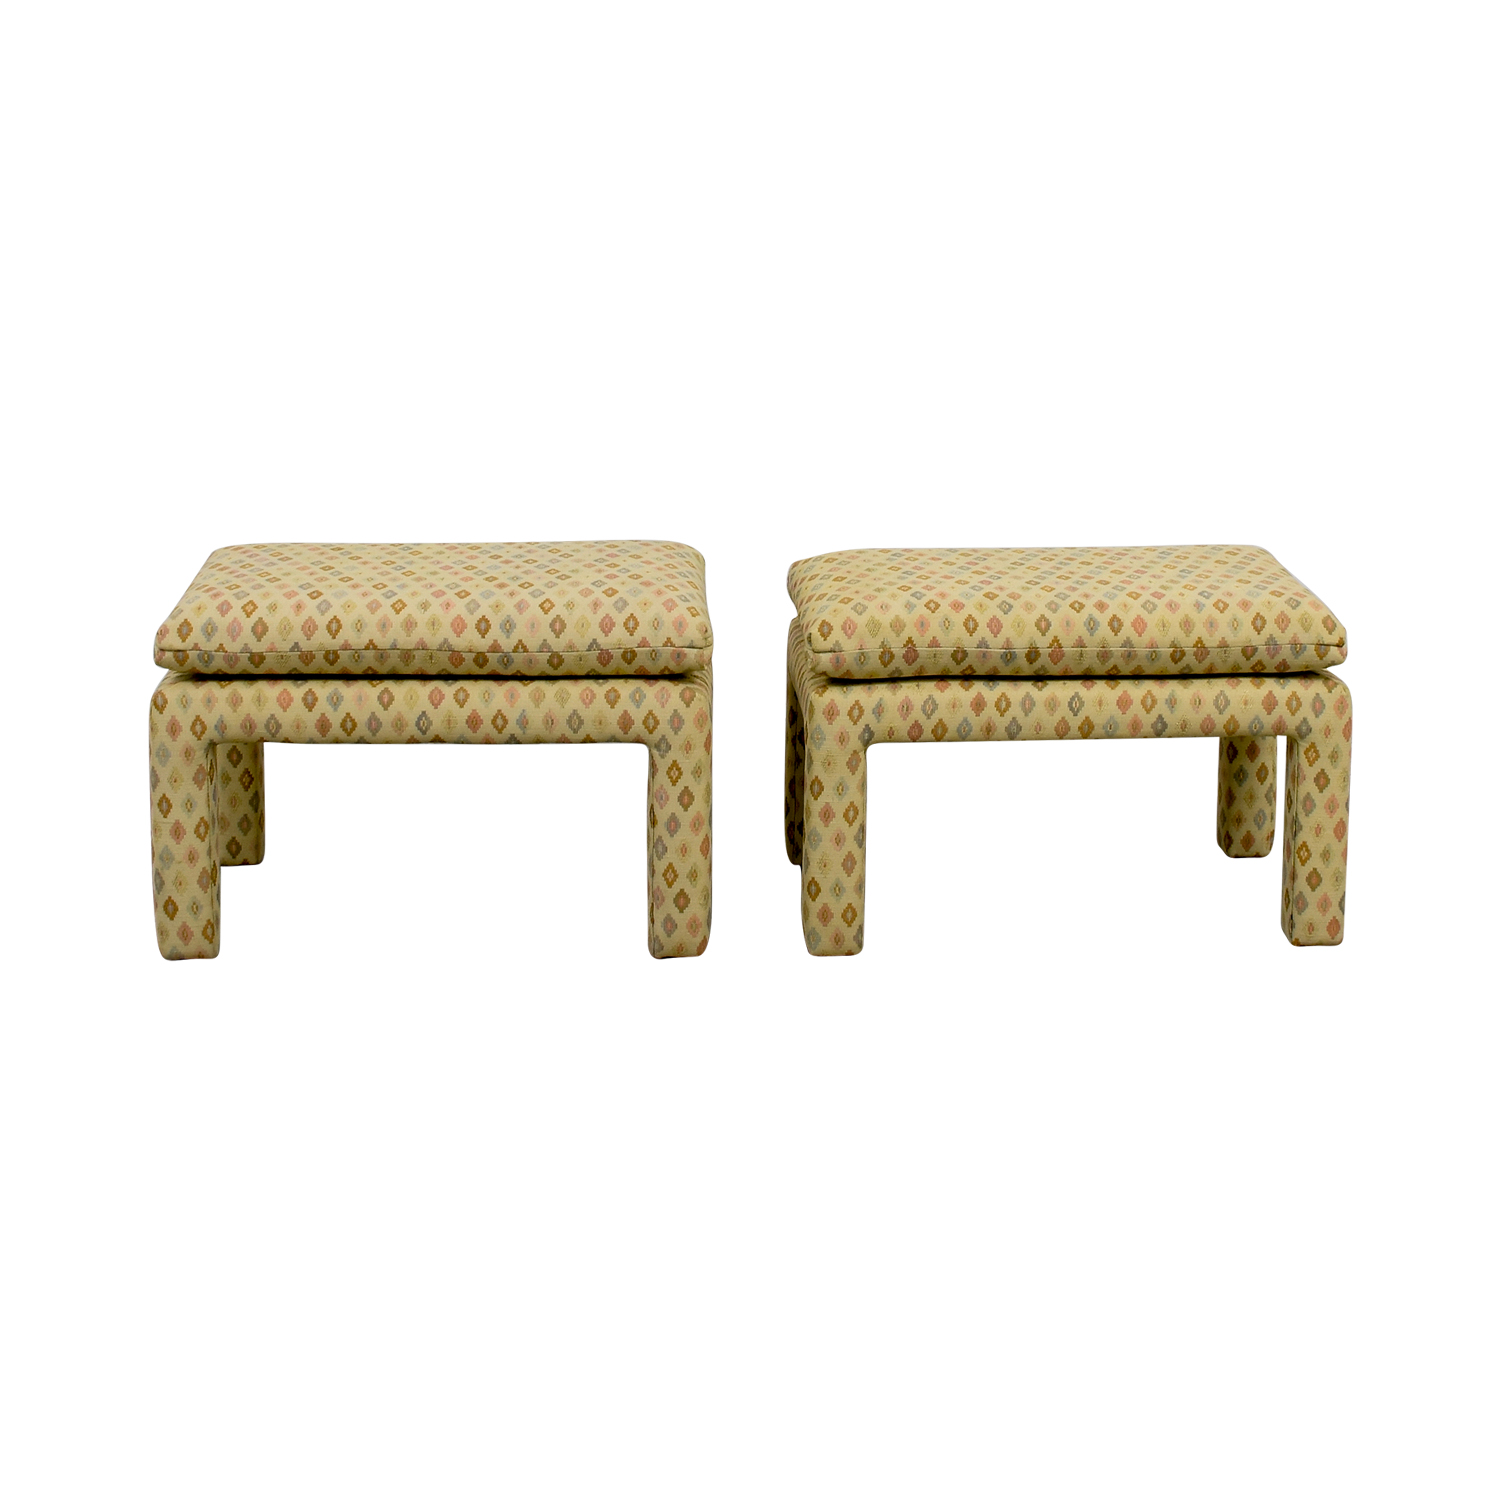 Beige Multi-Colored Upholstered Footstools WHITE